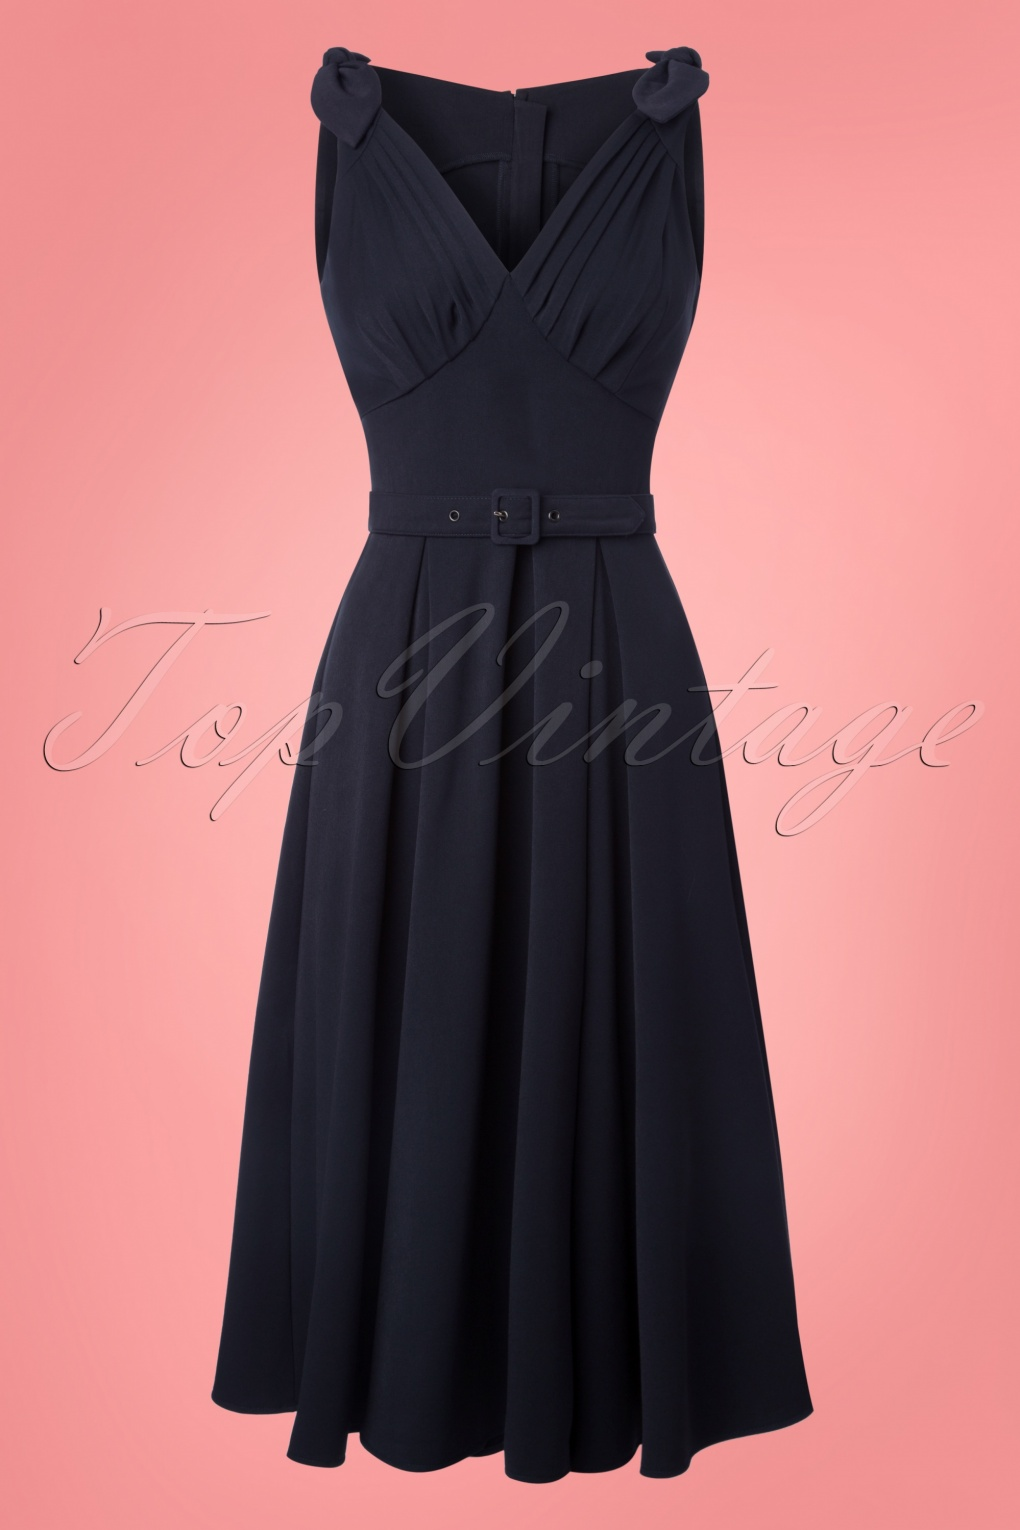 Pin Up Dresses | Pin Up Clothing 50s Marissa Lee Bow Swing Dress in Navy £90.15 AT vintagedancer.com